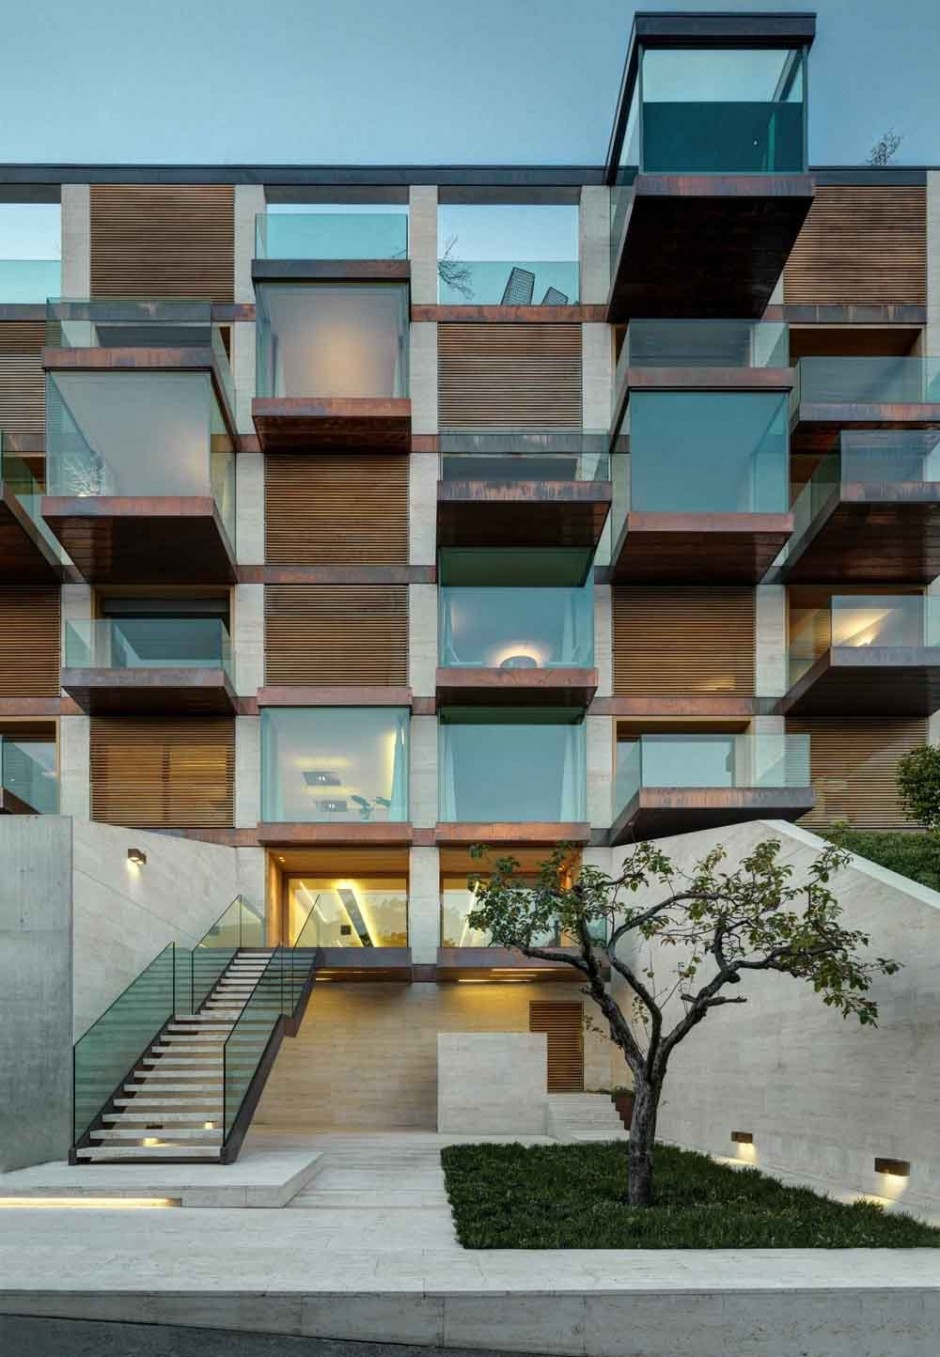 Luxury Condominium With A Facade Made Of Glass Cubes